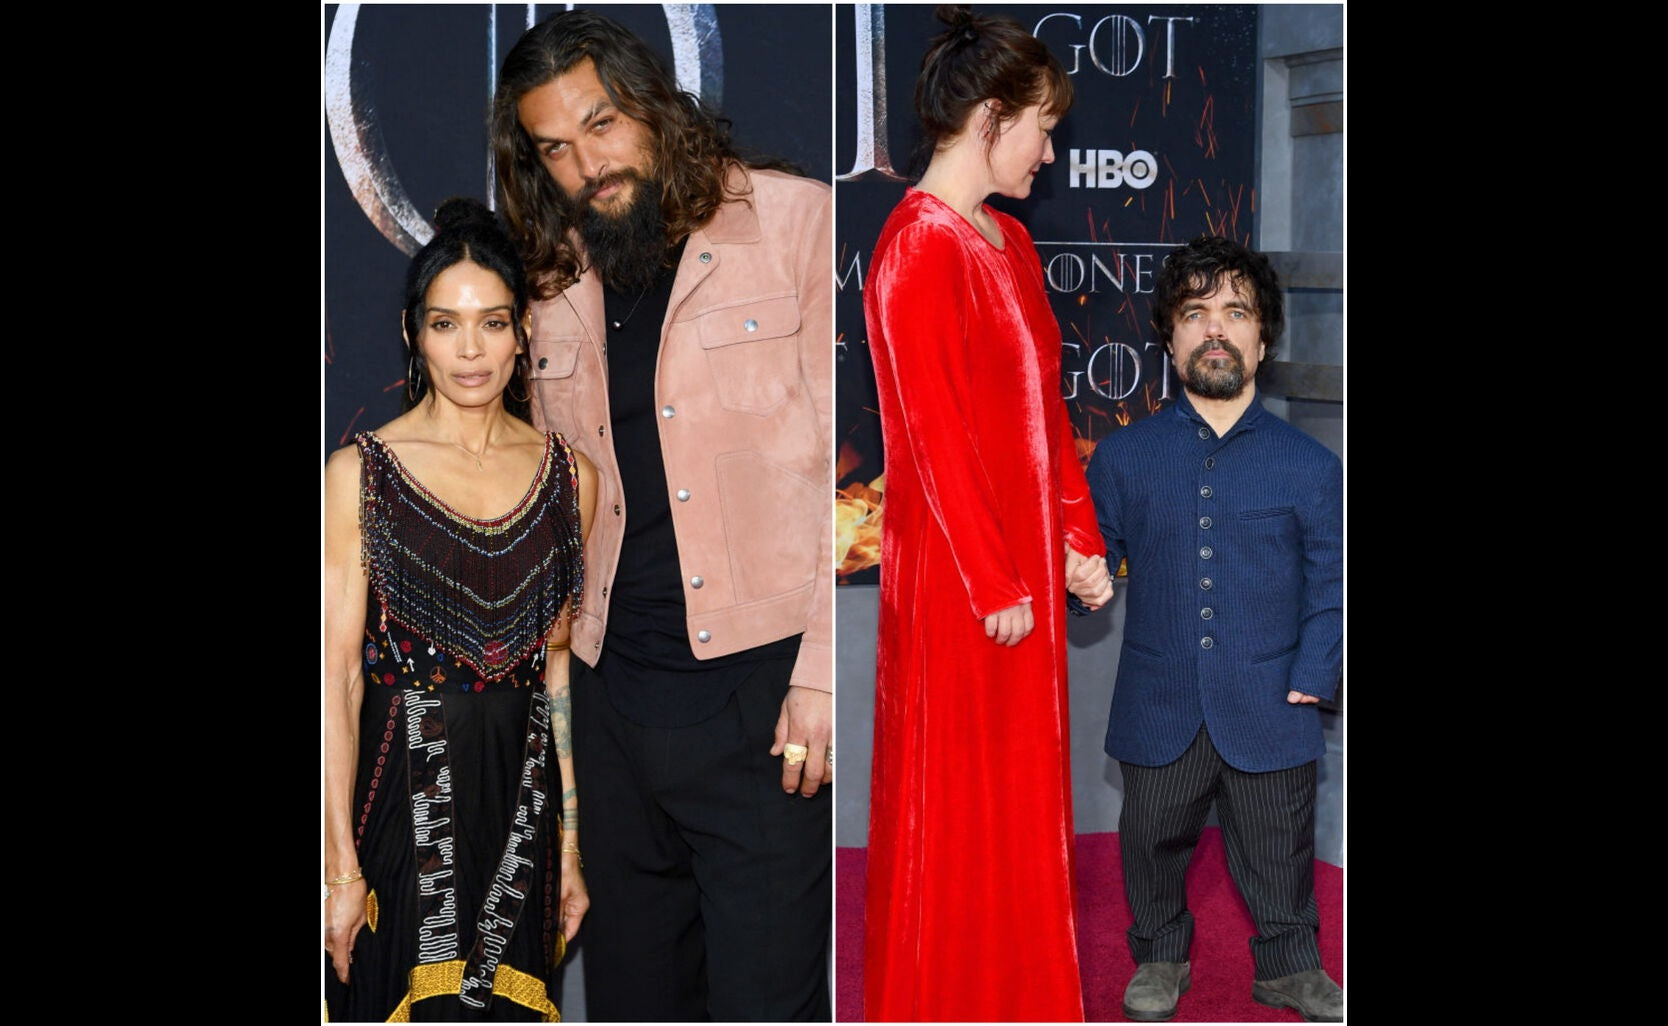 Jason Momoa and Lisa Bonet, Peter Dinklage and Erica Schmidt at the premiere of s 8 of Game of Thrones